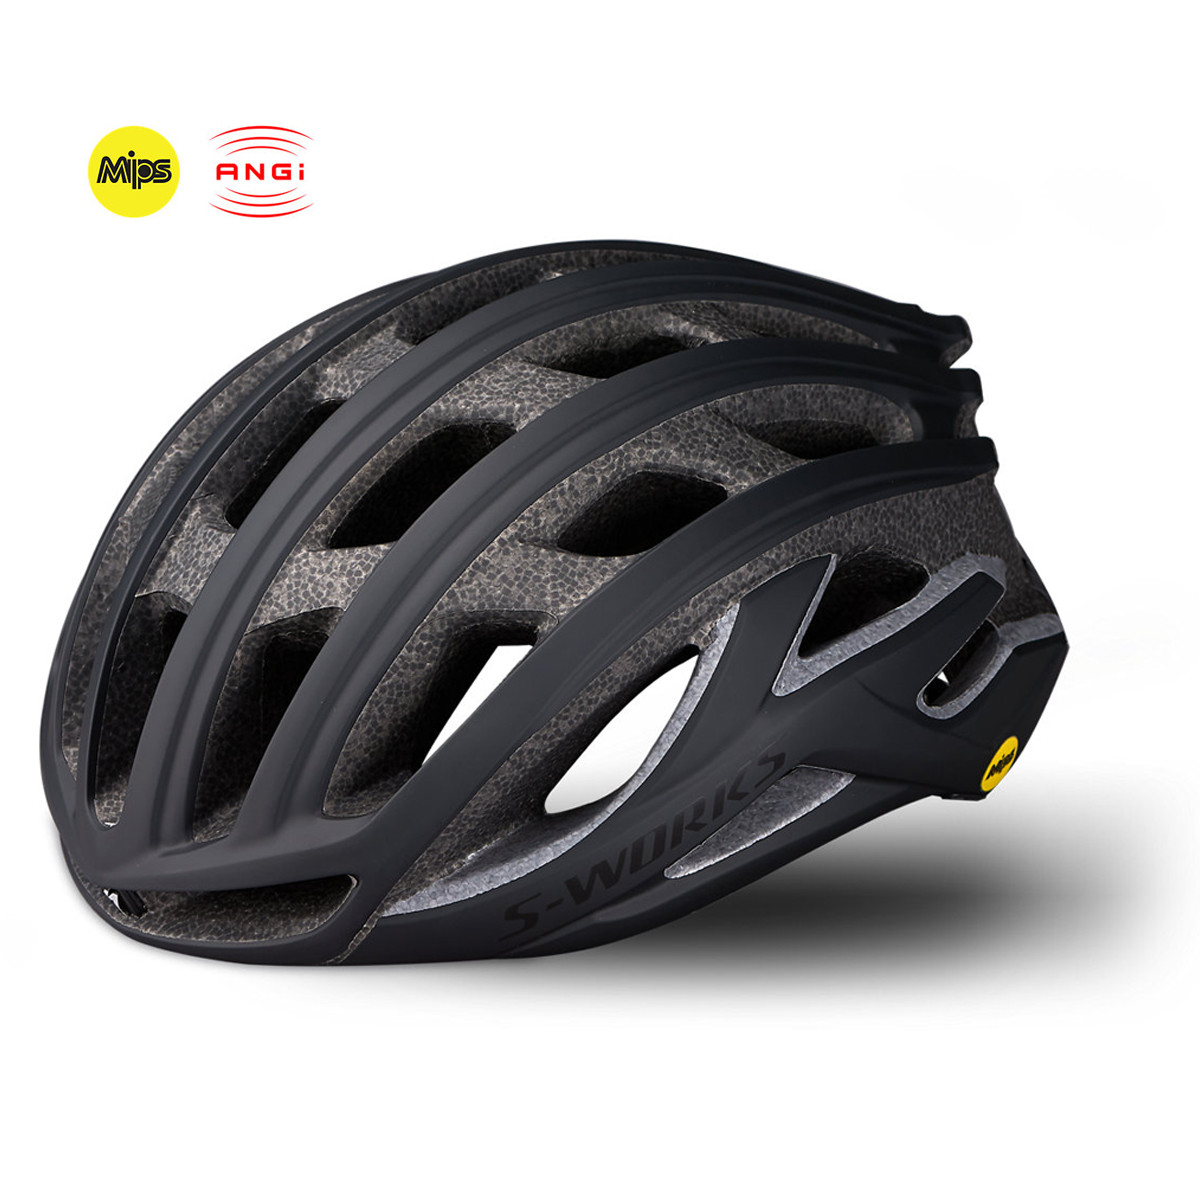 CASQUE SPECIALIZED S-WORKS PREVAIL II ANGI MIPS